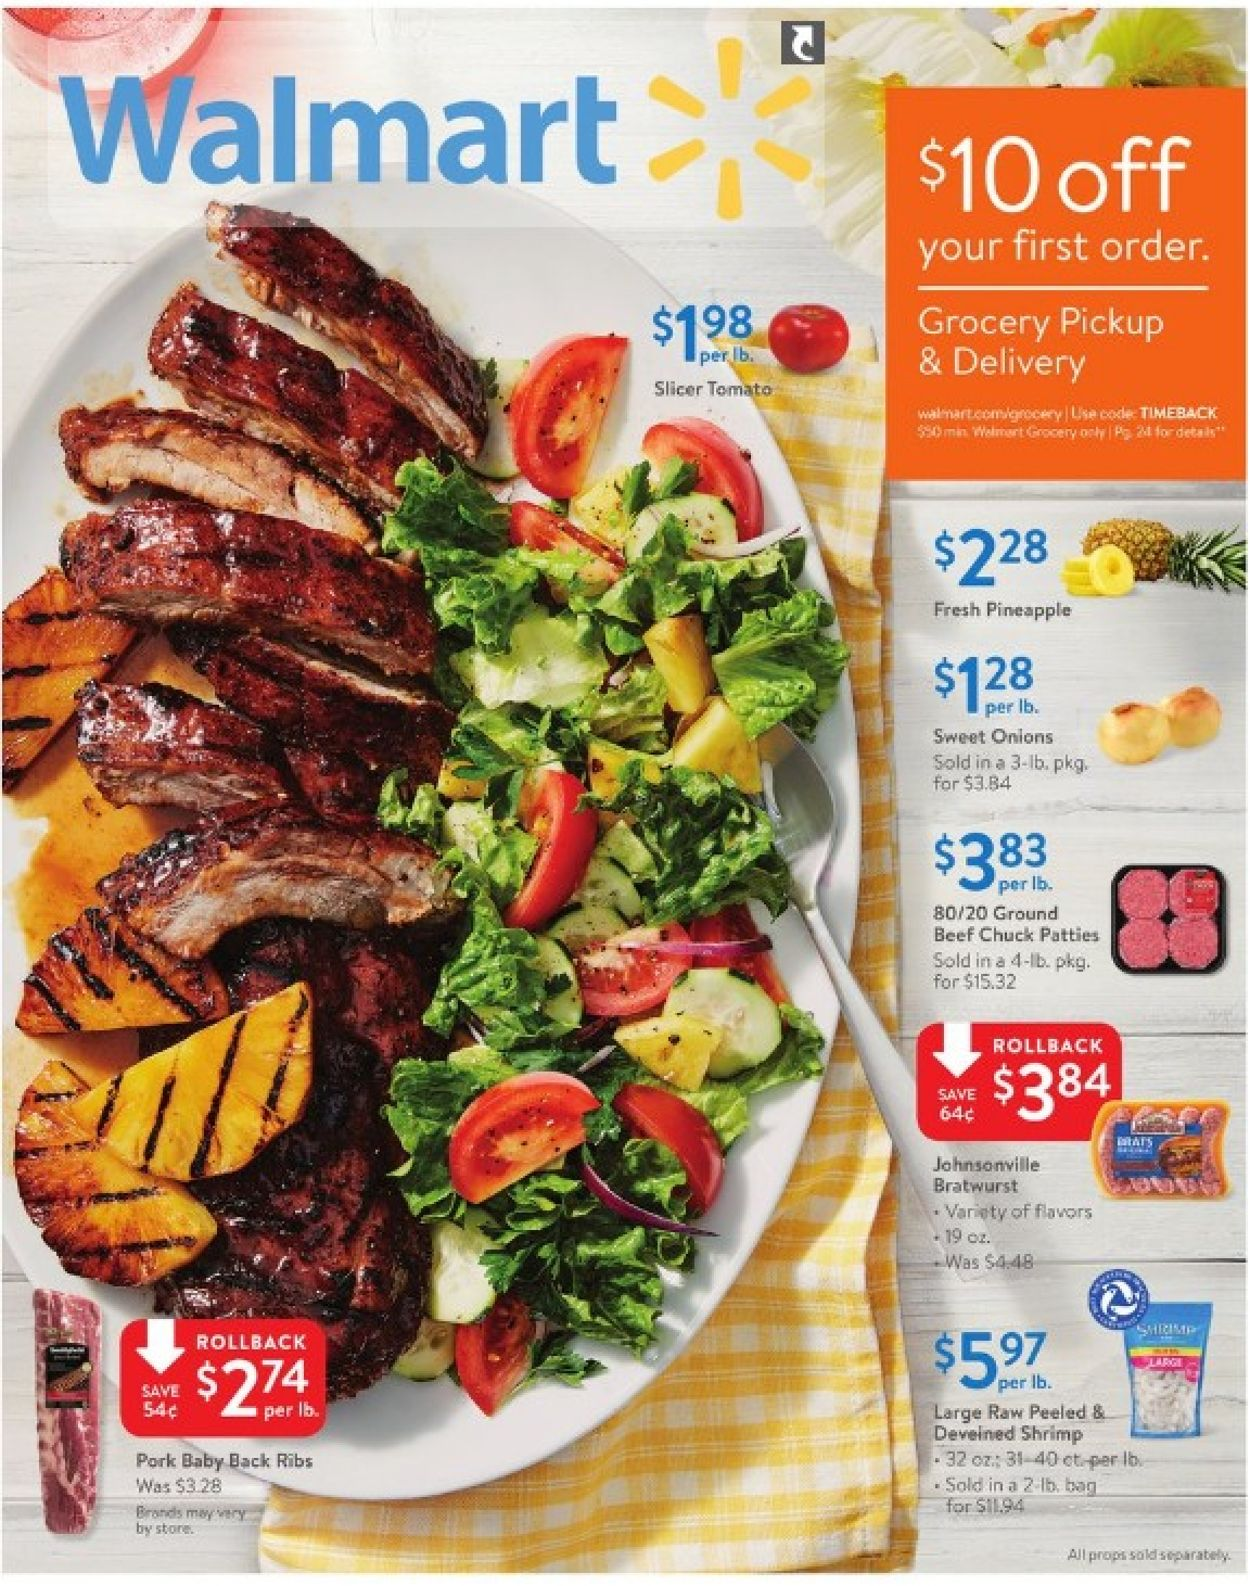 Walmart Current weekly ad 05/24 - 06/08/2019 - frequent-ads.com